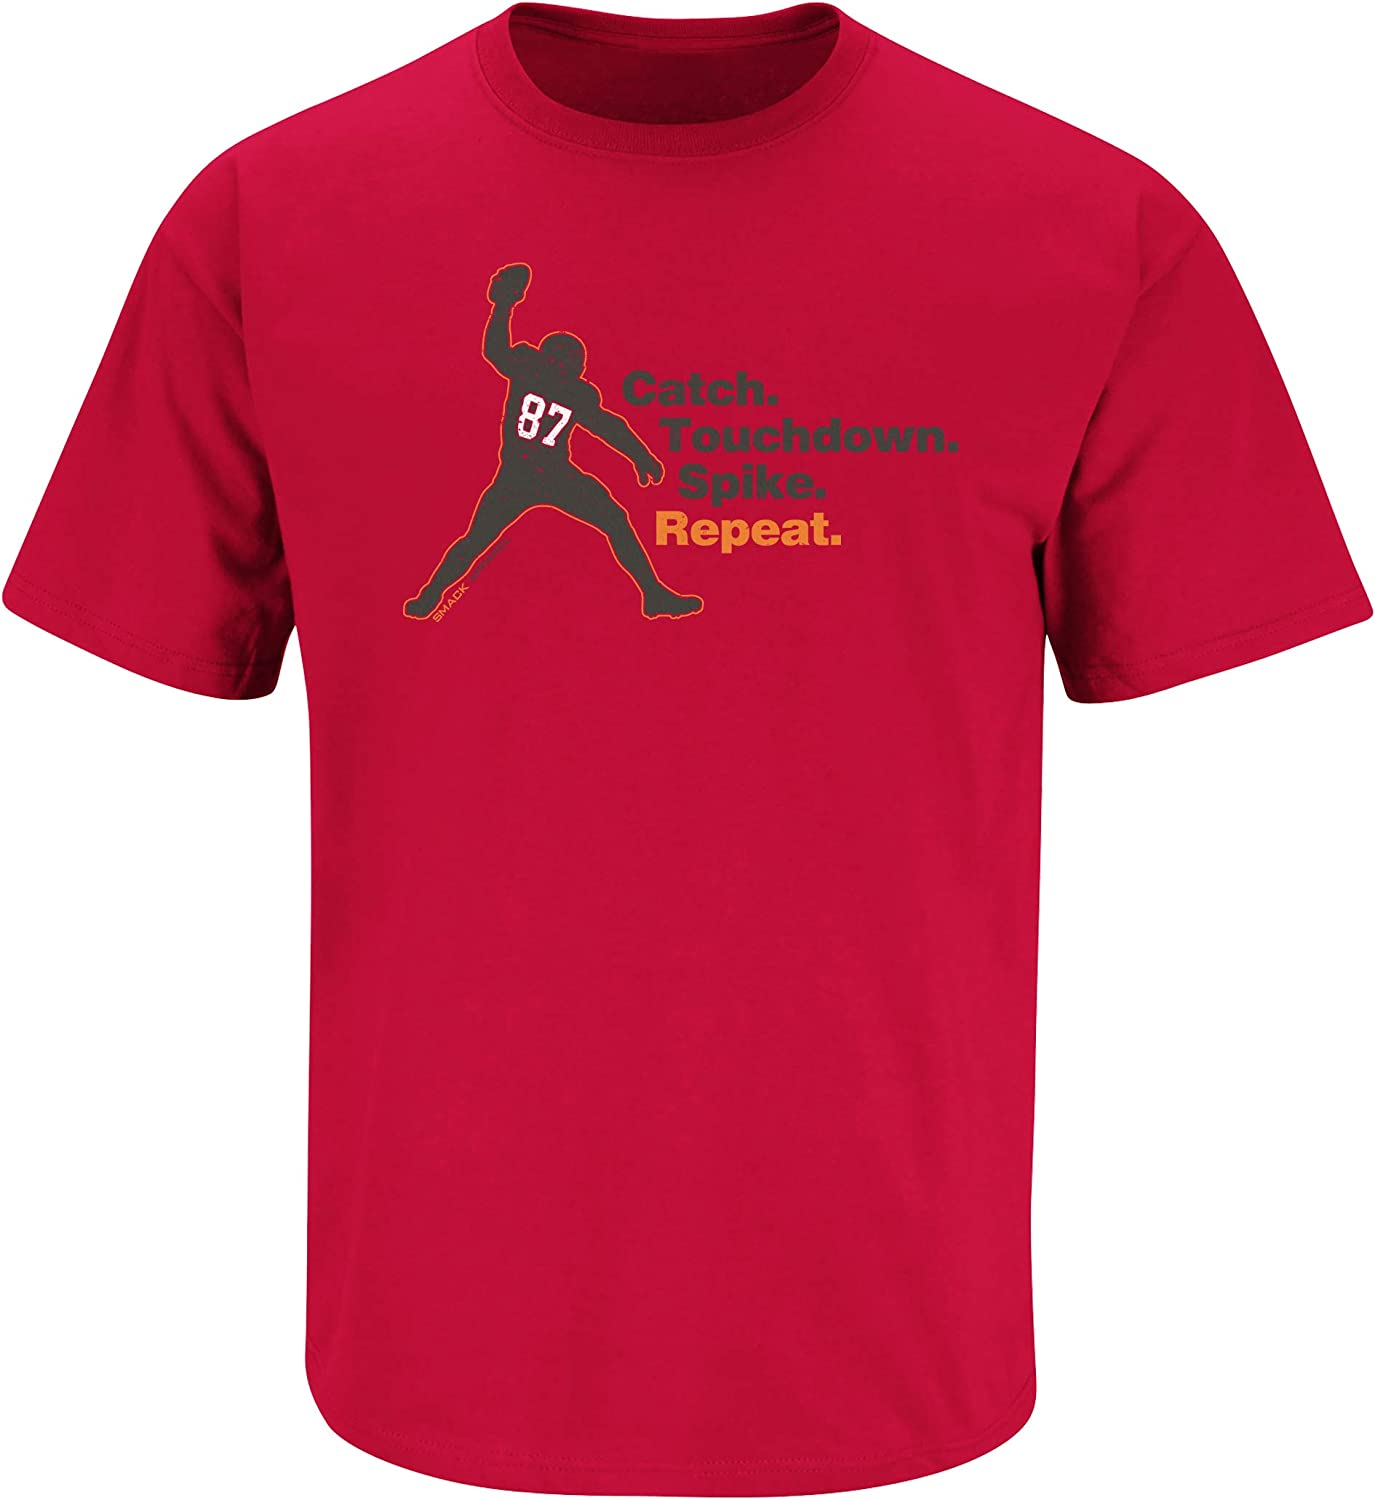 Catch Tampa Bay Football Fans Red T-Shirt Sm-5X Repeat Touchdown Spike